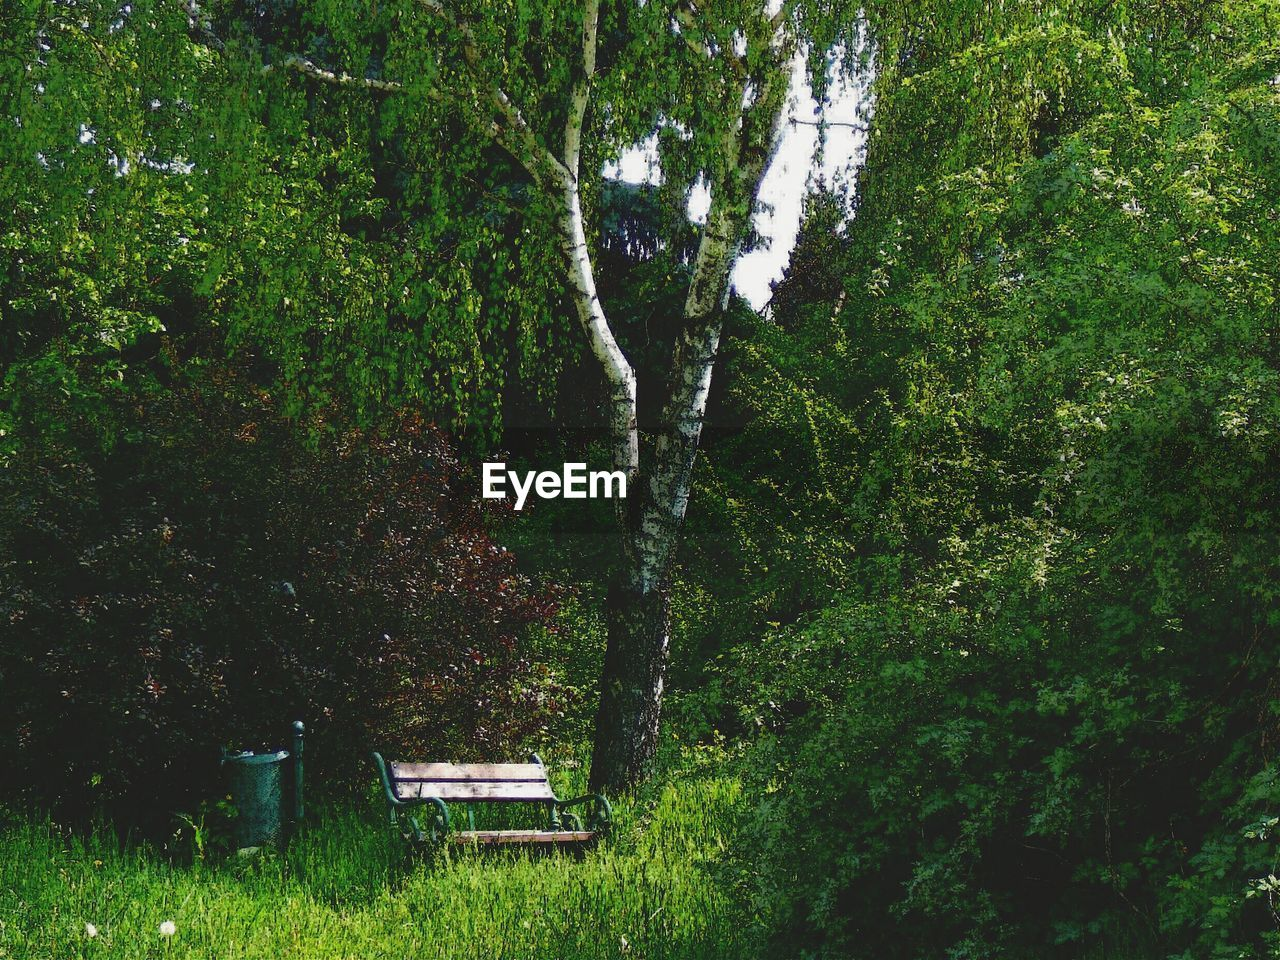 plant, tree, nature, growth, land, grass, forest, seat, foliage, bench, park, lush foliage, outdoors, environment, no people, front or back yard, tranquility, day, green color, relaxation